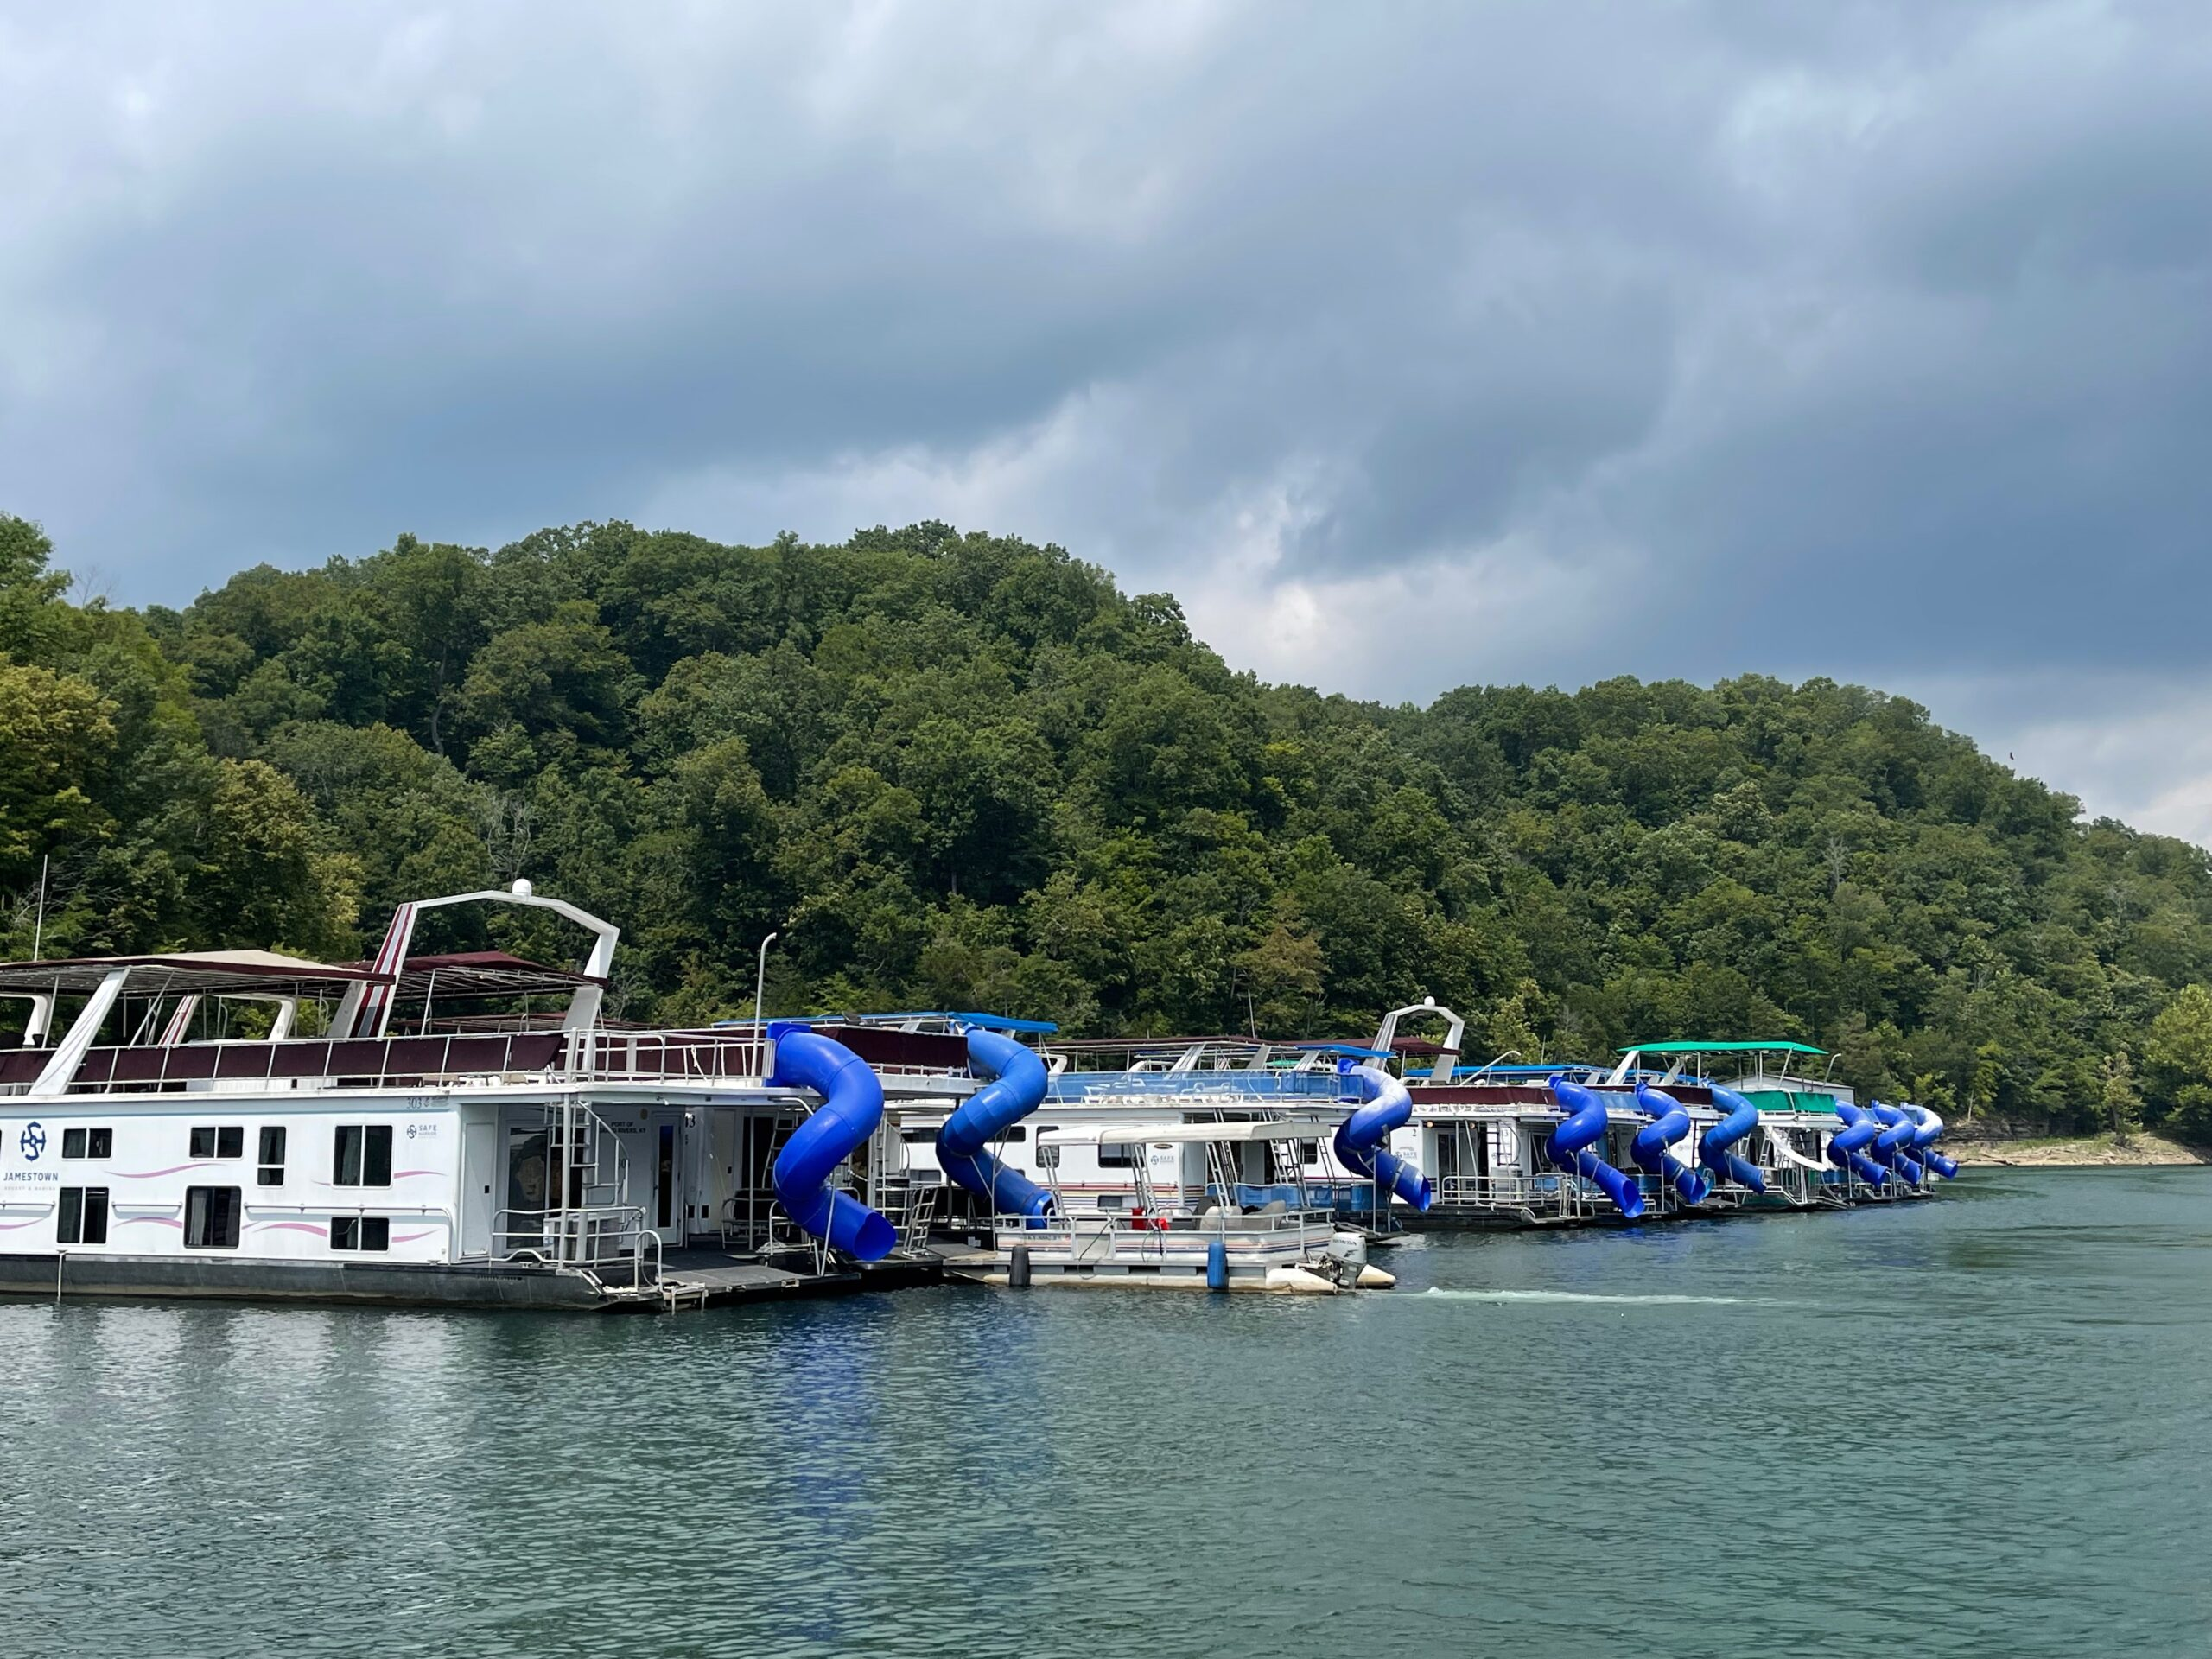 small towns in kentucky - houseboats on Cumberland Lake